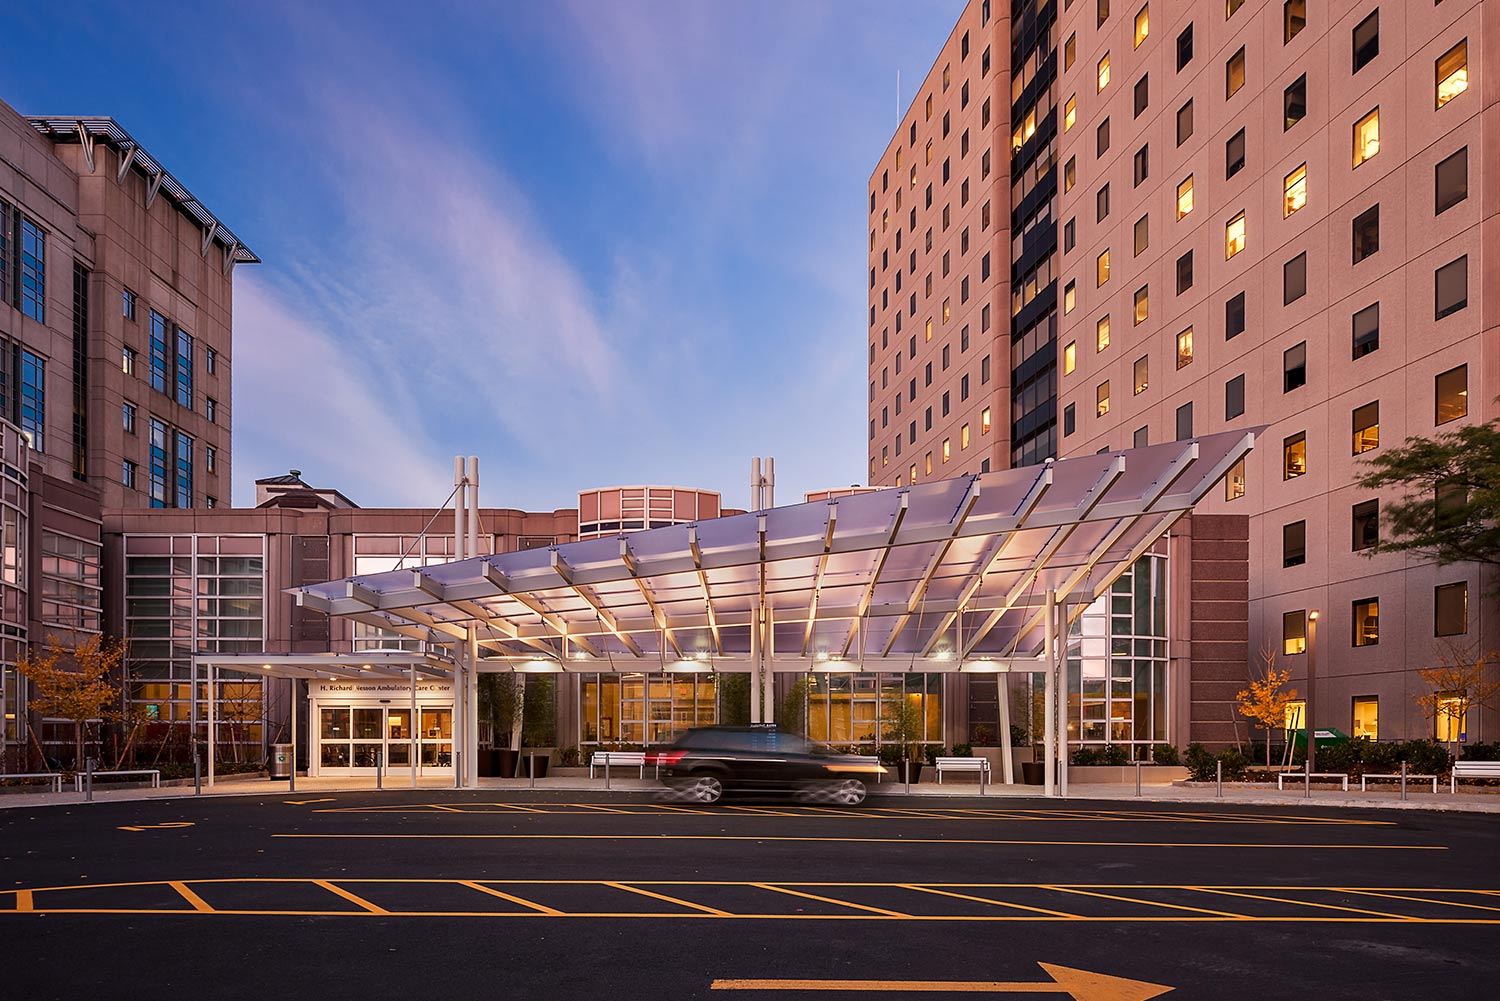 BWH_45-Francis-Canopy-Architecture_drivecourt_hospital-campus_Klopfer-Martin.jpg